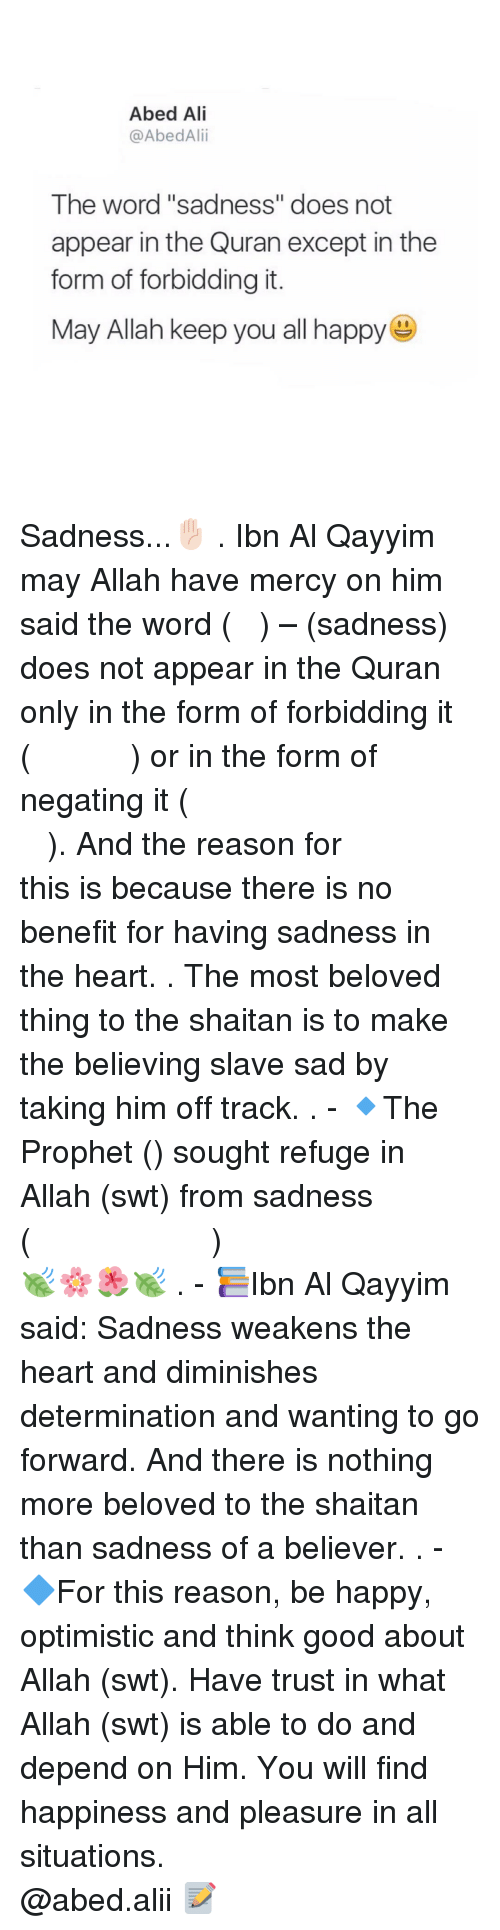 """Pleasured: Abed Ali  @AbedAlii  The word """"sadness"""" does not  appear in the Quran except in the  form of forbidding it.  May Allah keep you all happy Sadness...✋🏻 . Ibn Al Qayyim may Allah have mercy on him said the word (الحزن) – (sadness) does not appear in the Quran only in the form of forbidding it (ولا تهنو ولاتحزنوا) or in the form of negating it (فلاخوف عليهم ولا هم يحزنون). And the reason for this is because there is no benefit for having sadness in the heart. . The most beloved thing to the shaitan is to make the believing slave sad by taking him off track. . - 🔹The Prophet (ﷺ) sought refuge in Allah (swt) from sadness (اللهم إني أعوذ بك من الهم والحزن)🍃🌸🌺🍃 . - 📚Ibn Al Qayyim said: Sadness weakens the heart and diminishes determination and wanting to go forward. And there is nothing more beloved to the shaitan than sadness of a believer. . - 🔷For this reason, be happy, optimistic and think good about Allah (swt). Have trust in what Allah (swt) is able to do and depend on Him. You will find happiness and pleasure in all situations. ▃▃▃▃▃▃▃▃▃▃▃▃▃▃▃▃▃▃▃▃ @abed.alii 📝"""